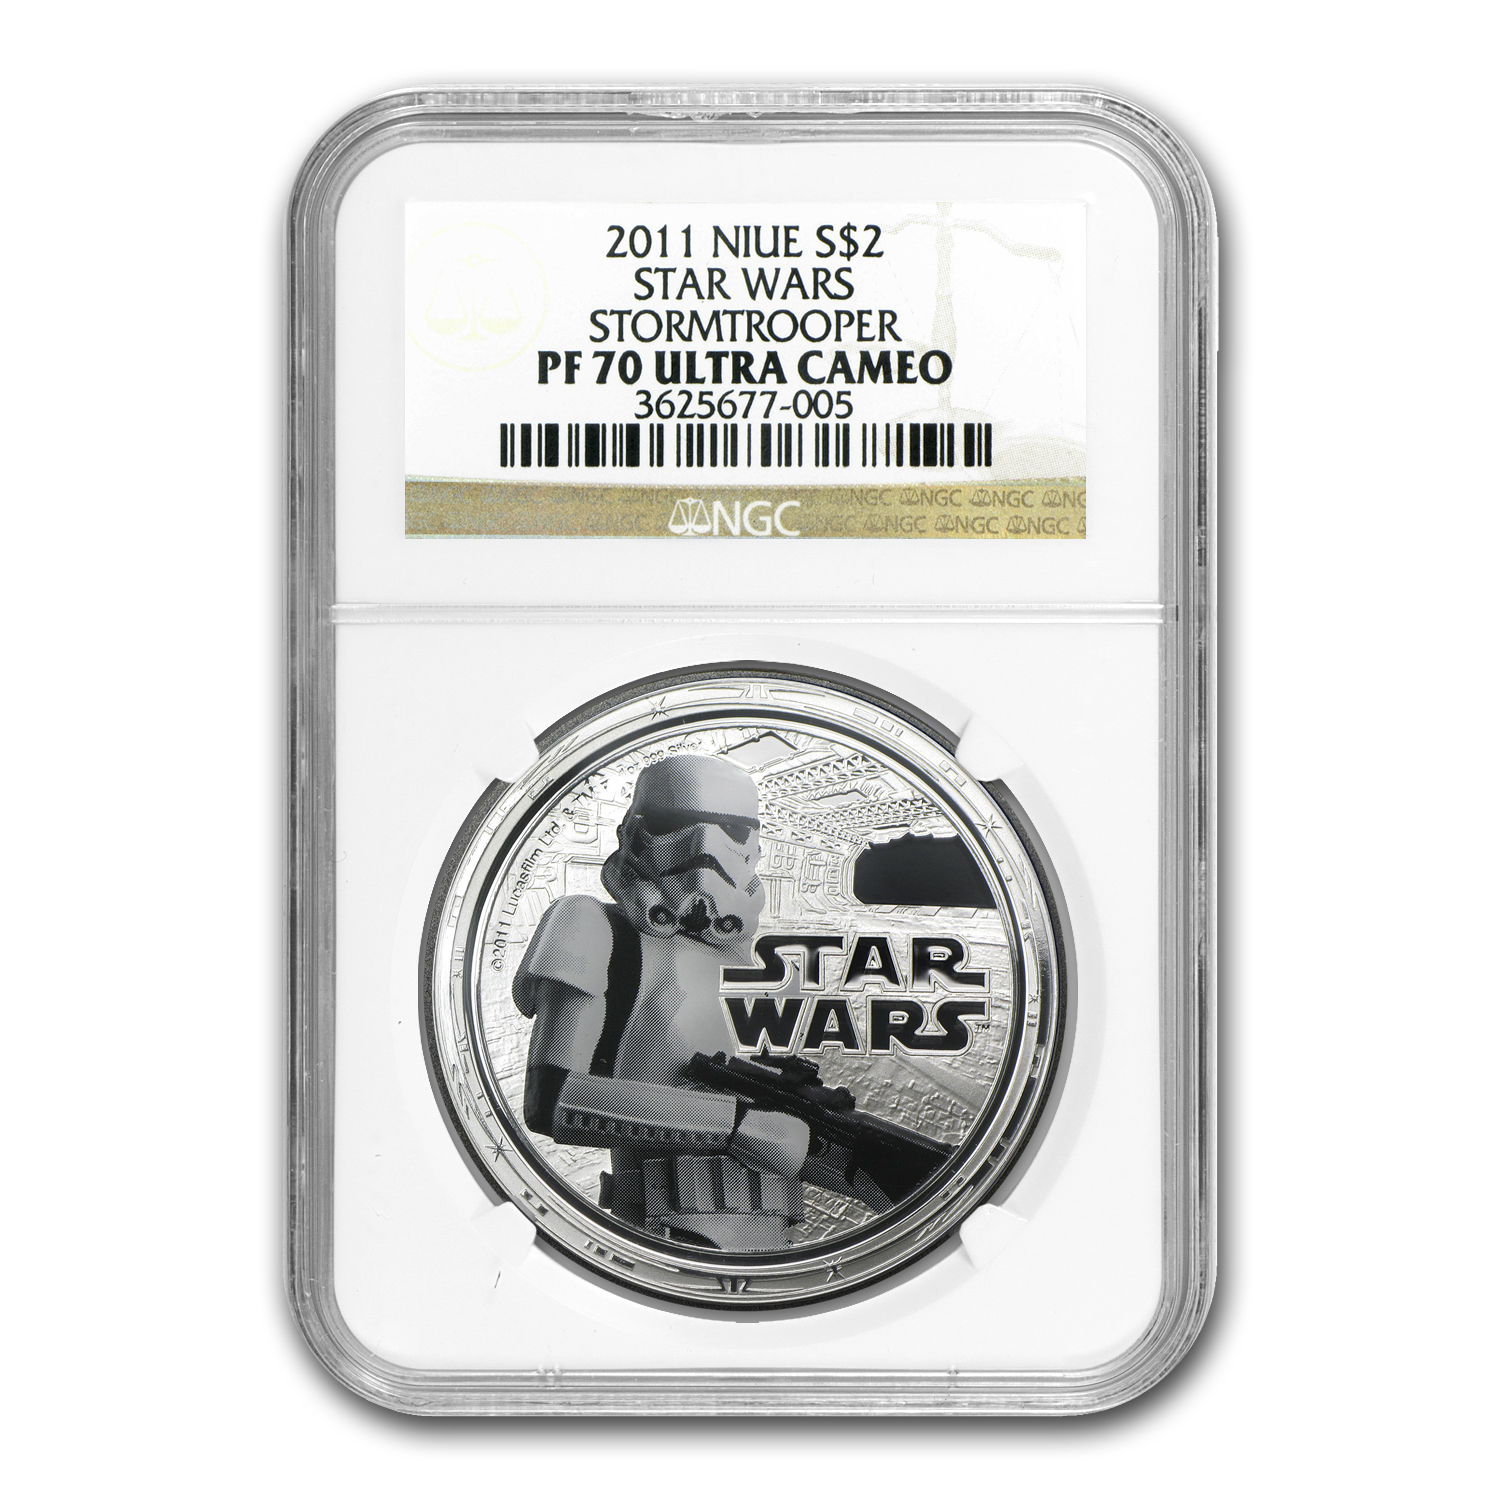 2011 1 oz Silver $2 Niue Star Wars Stormtrooper PF-70 NGC